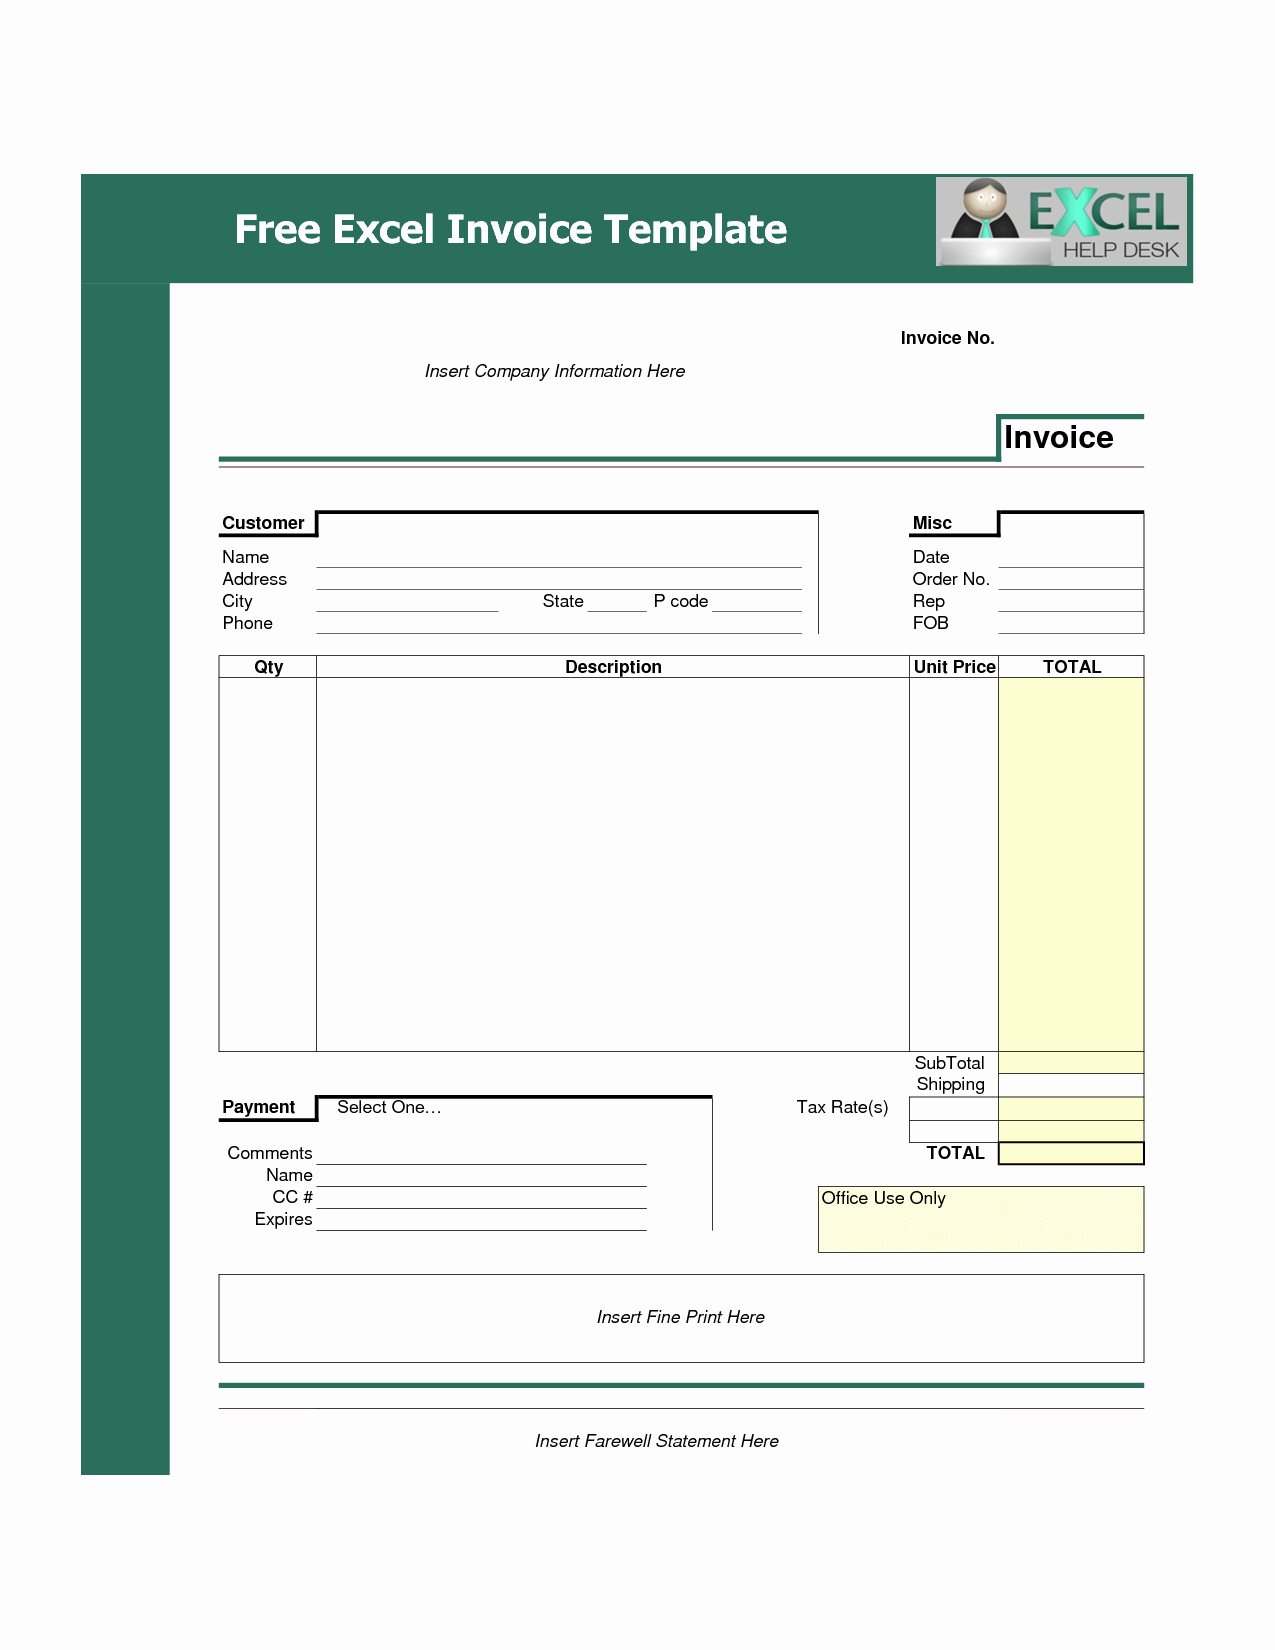 Free Excel Invoice Template Best Of Brilliant Examples Invoice Templates for Service and